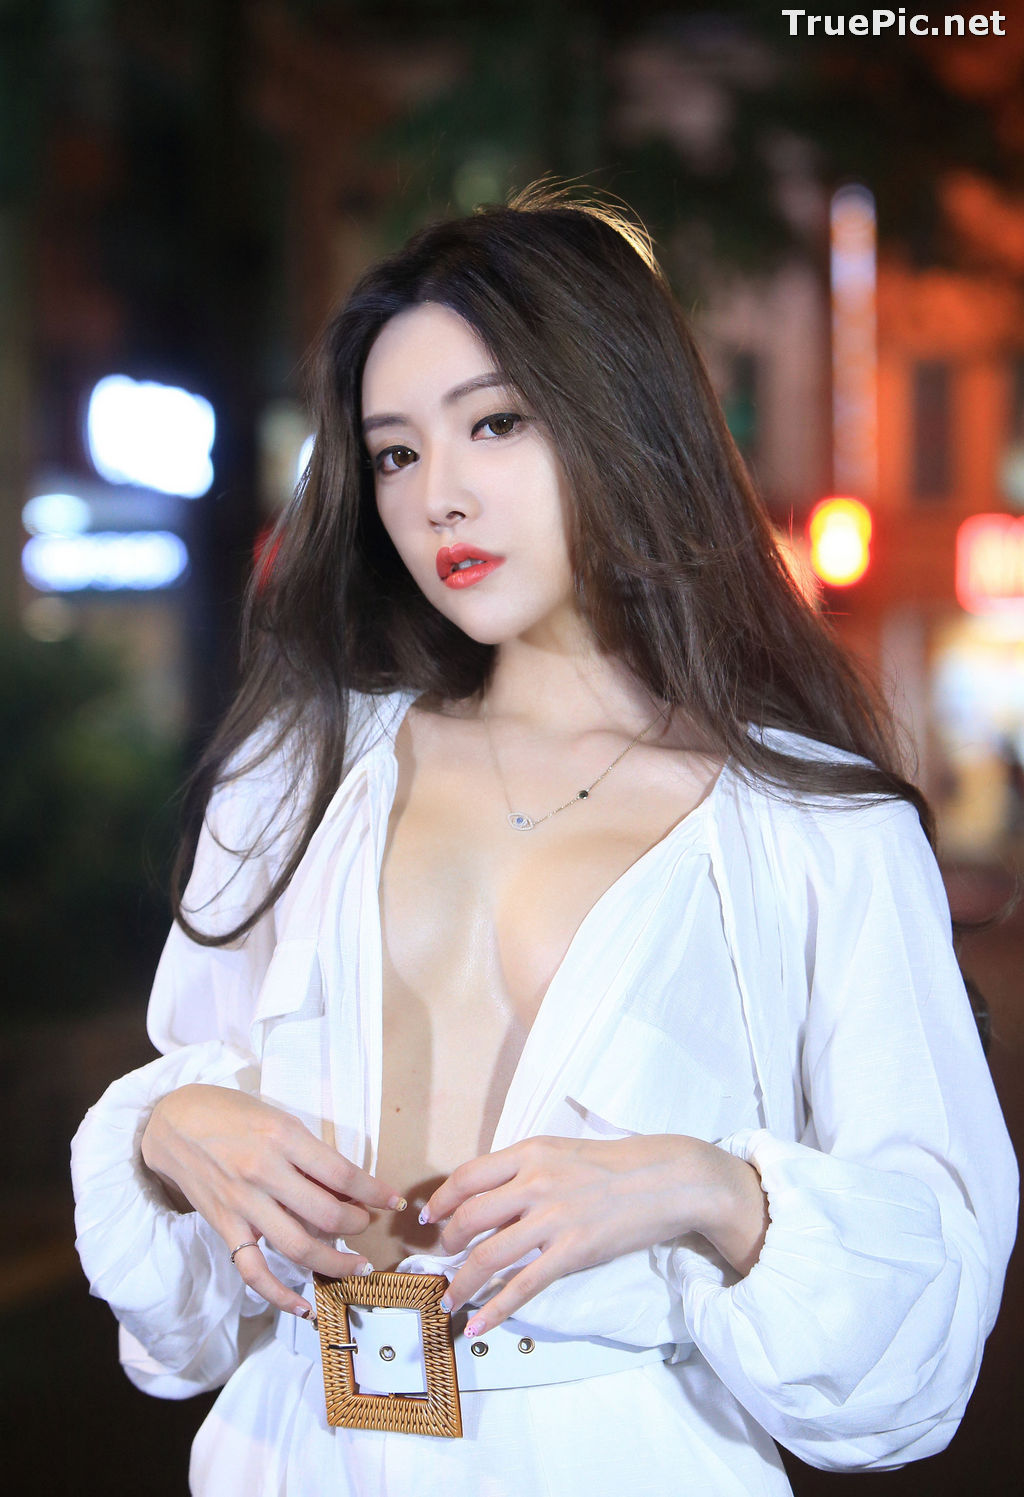 Image Taiwanese Model – 莊舒潔 (ViVi) – Sexy and Pure Baby In Night - TruePic.net - Picture-1